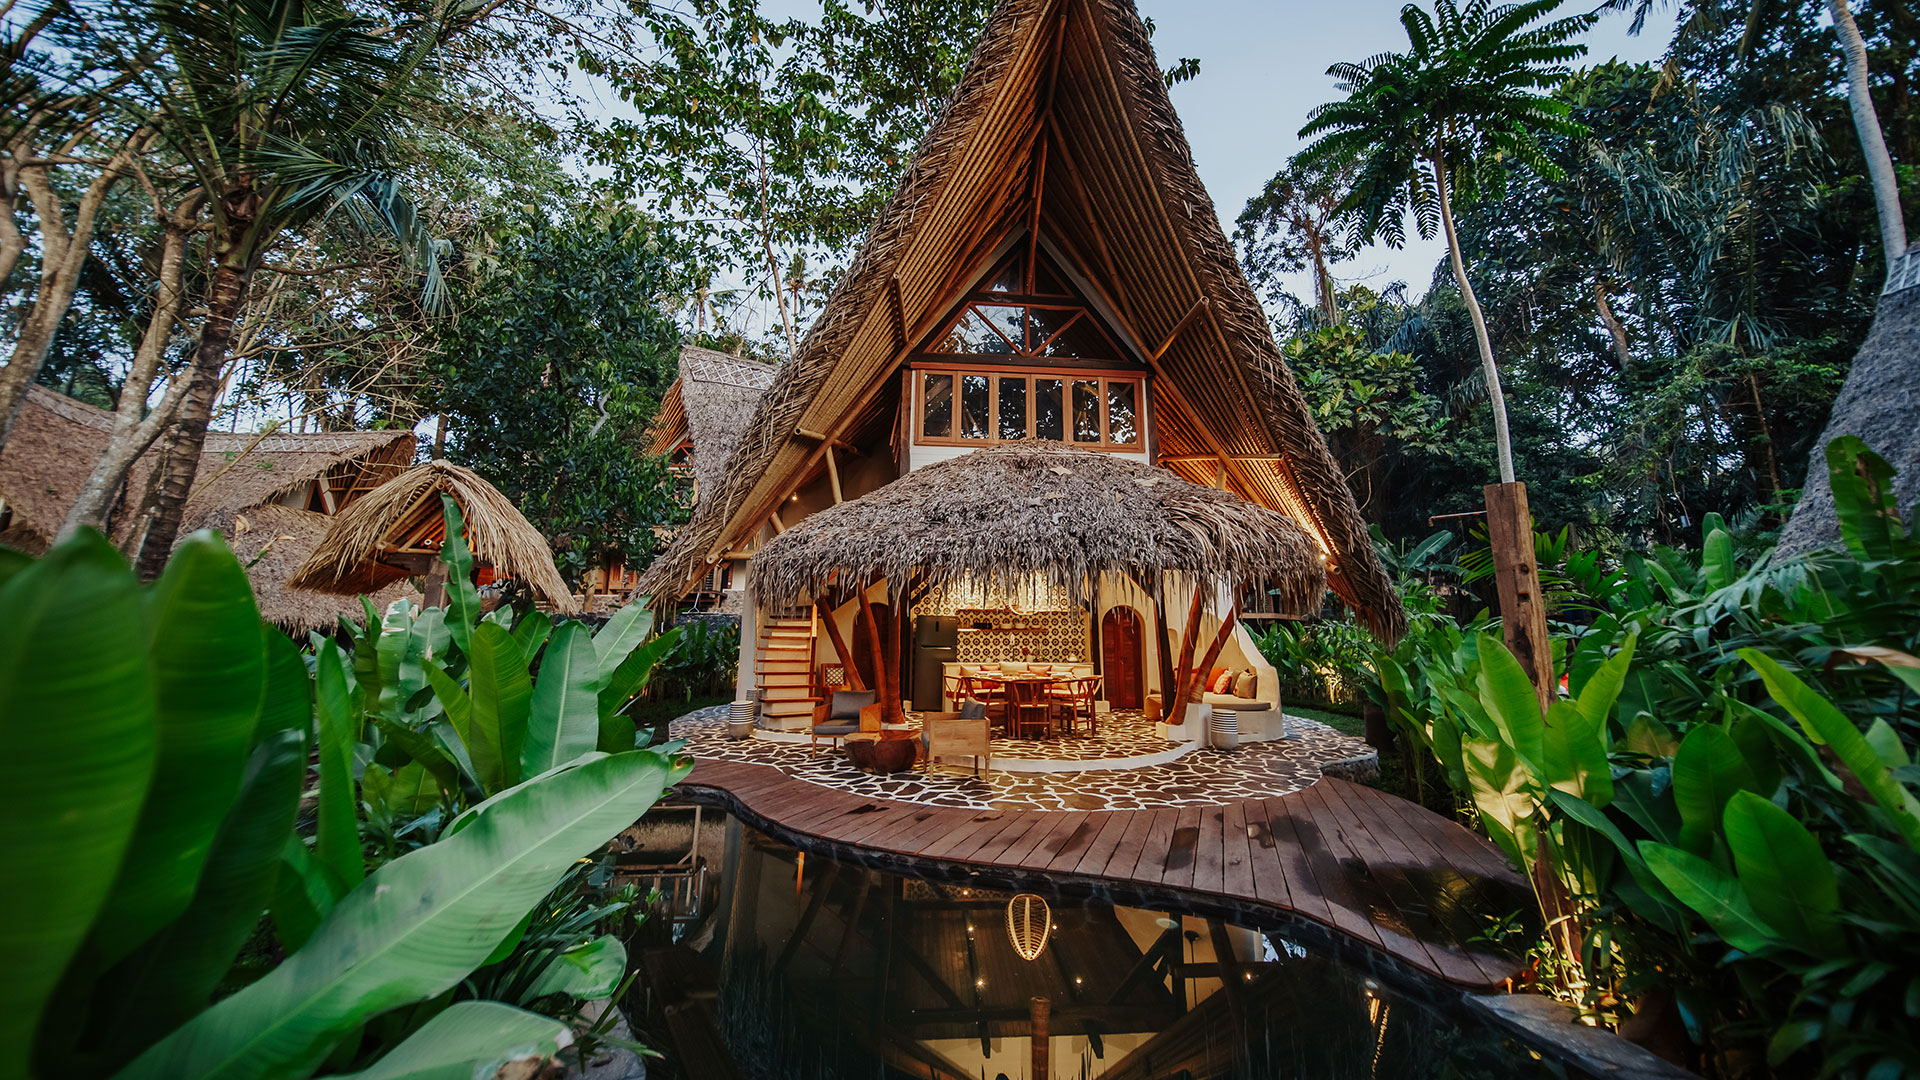 Eco village is one example of beautiful eco friendly villas complex located in rural area called Sibang, nearby Kul Kul Farm and Bali Green School...